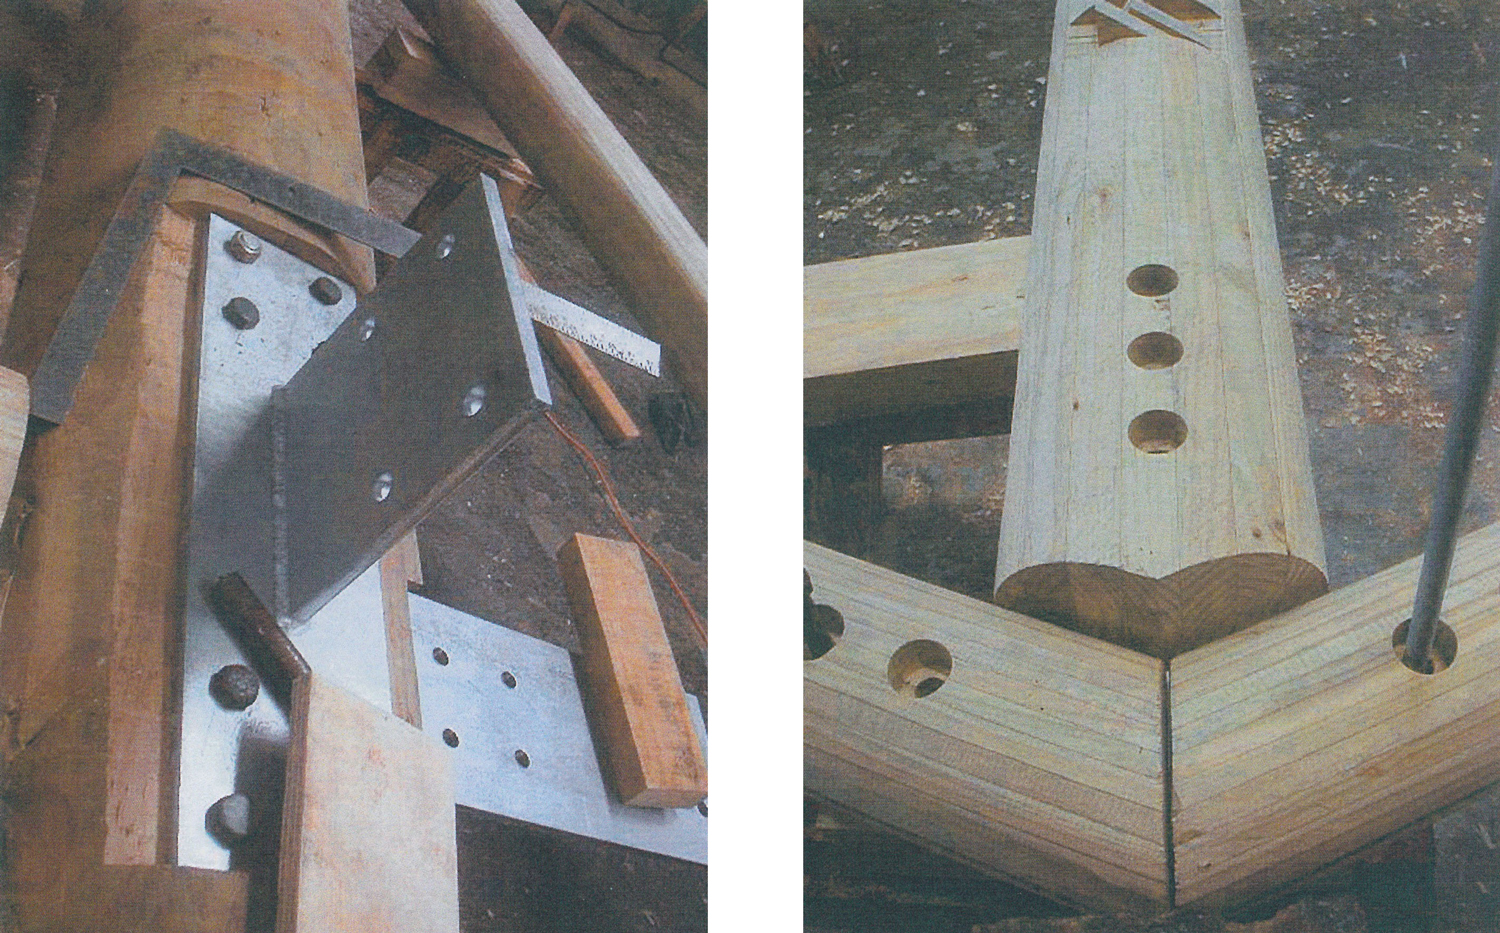 Figures 11 & 12  -Construction images of the metal gussets joining laminated timber members.